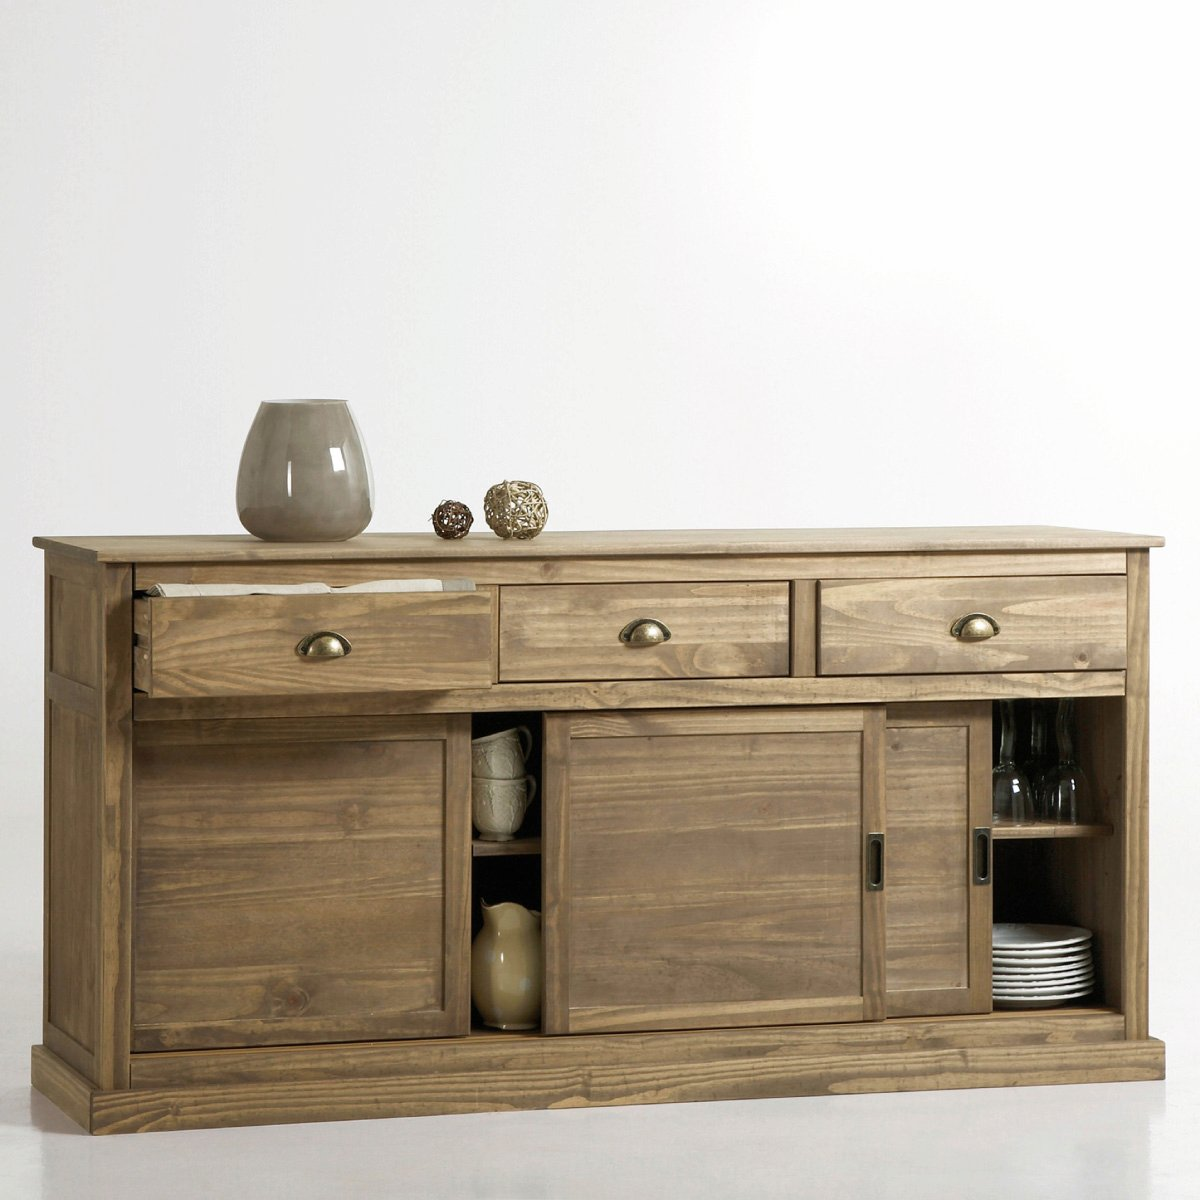 Buffet la redoute buffet portes coulissantes pin massif for Meuble bas portes coulissantes conforama